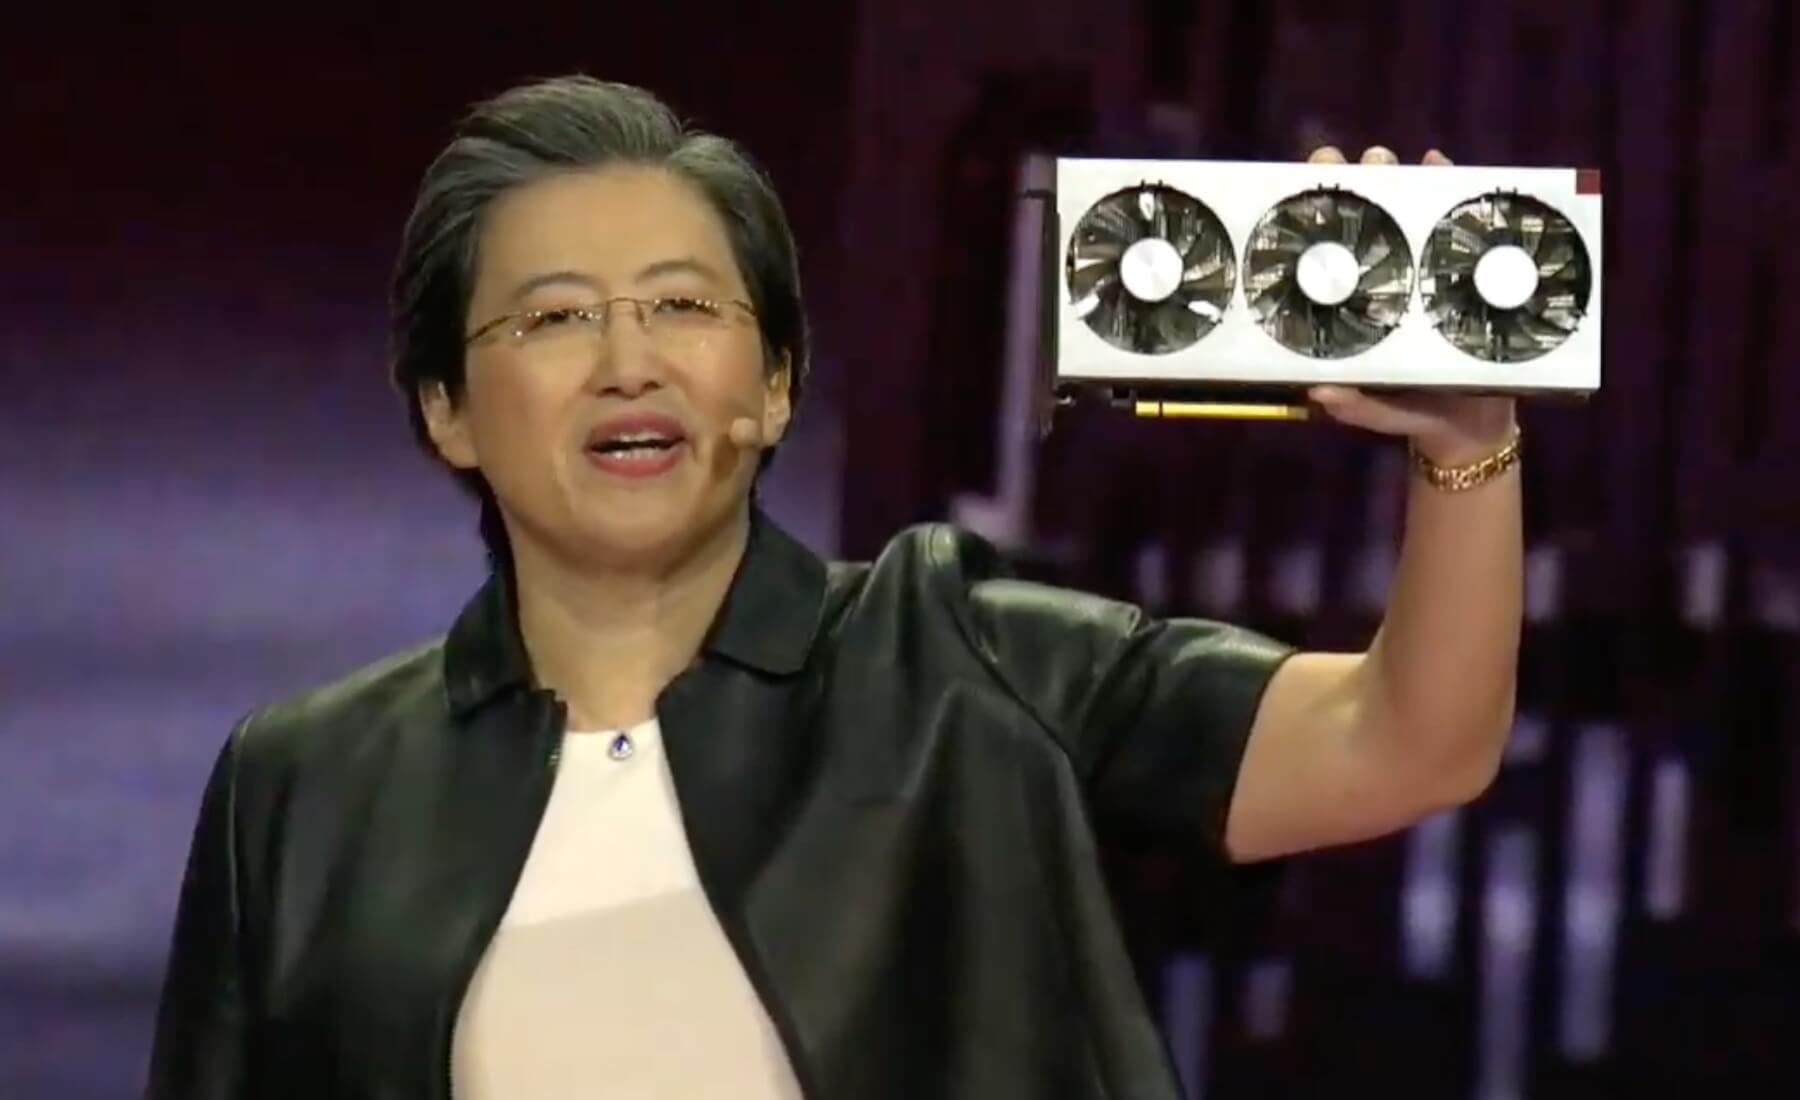 Amd Ceo Hints That High End Navi Gpus And Ray Tracing May Be Coming To Radeon Cards Techspot Forums